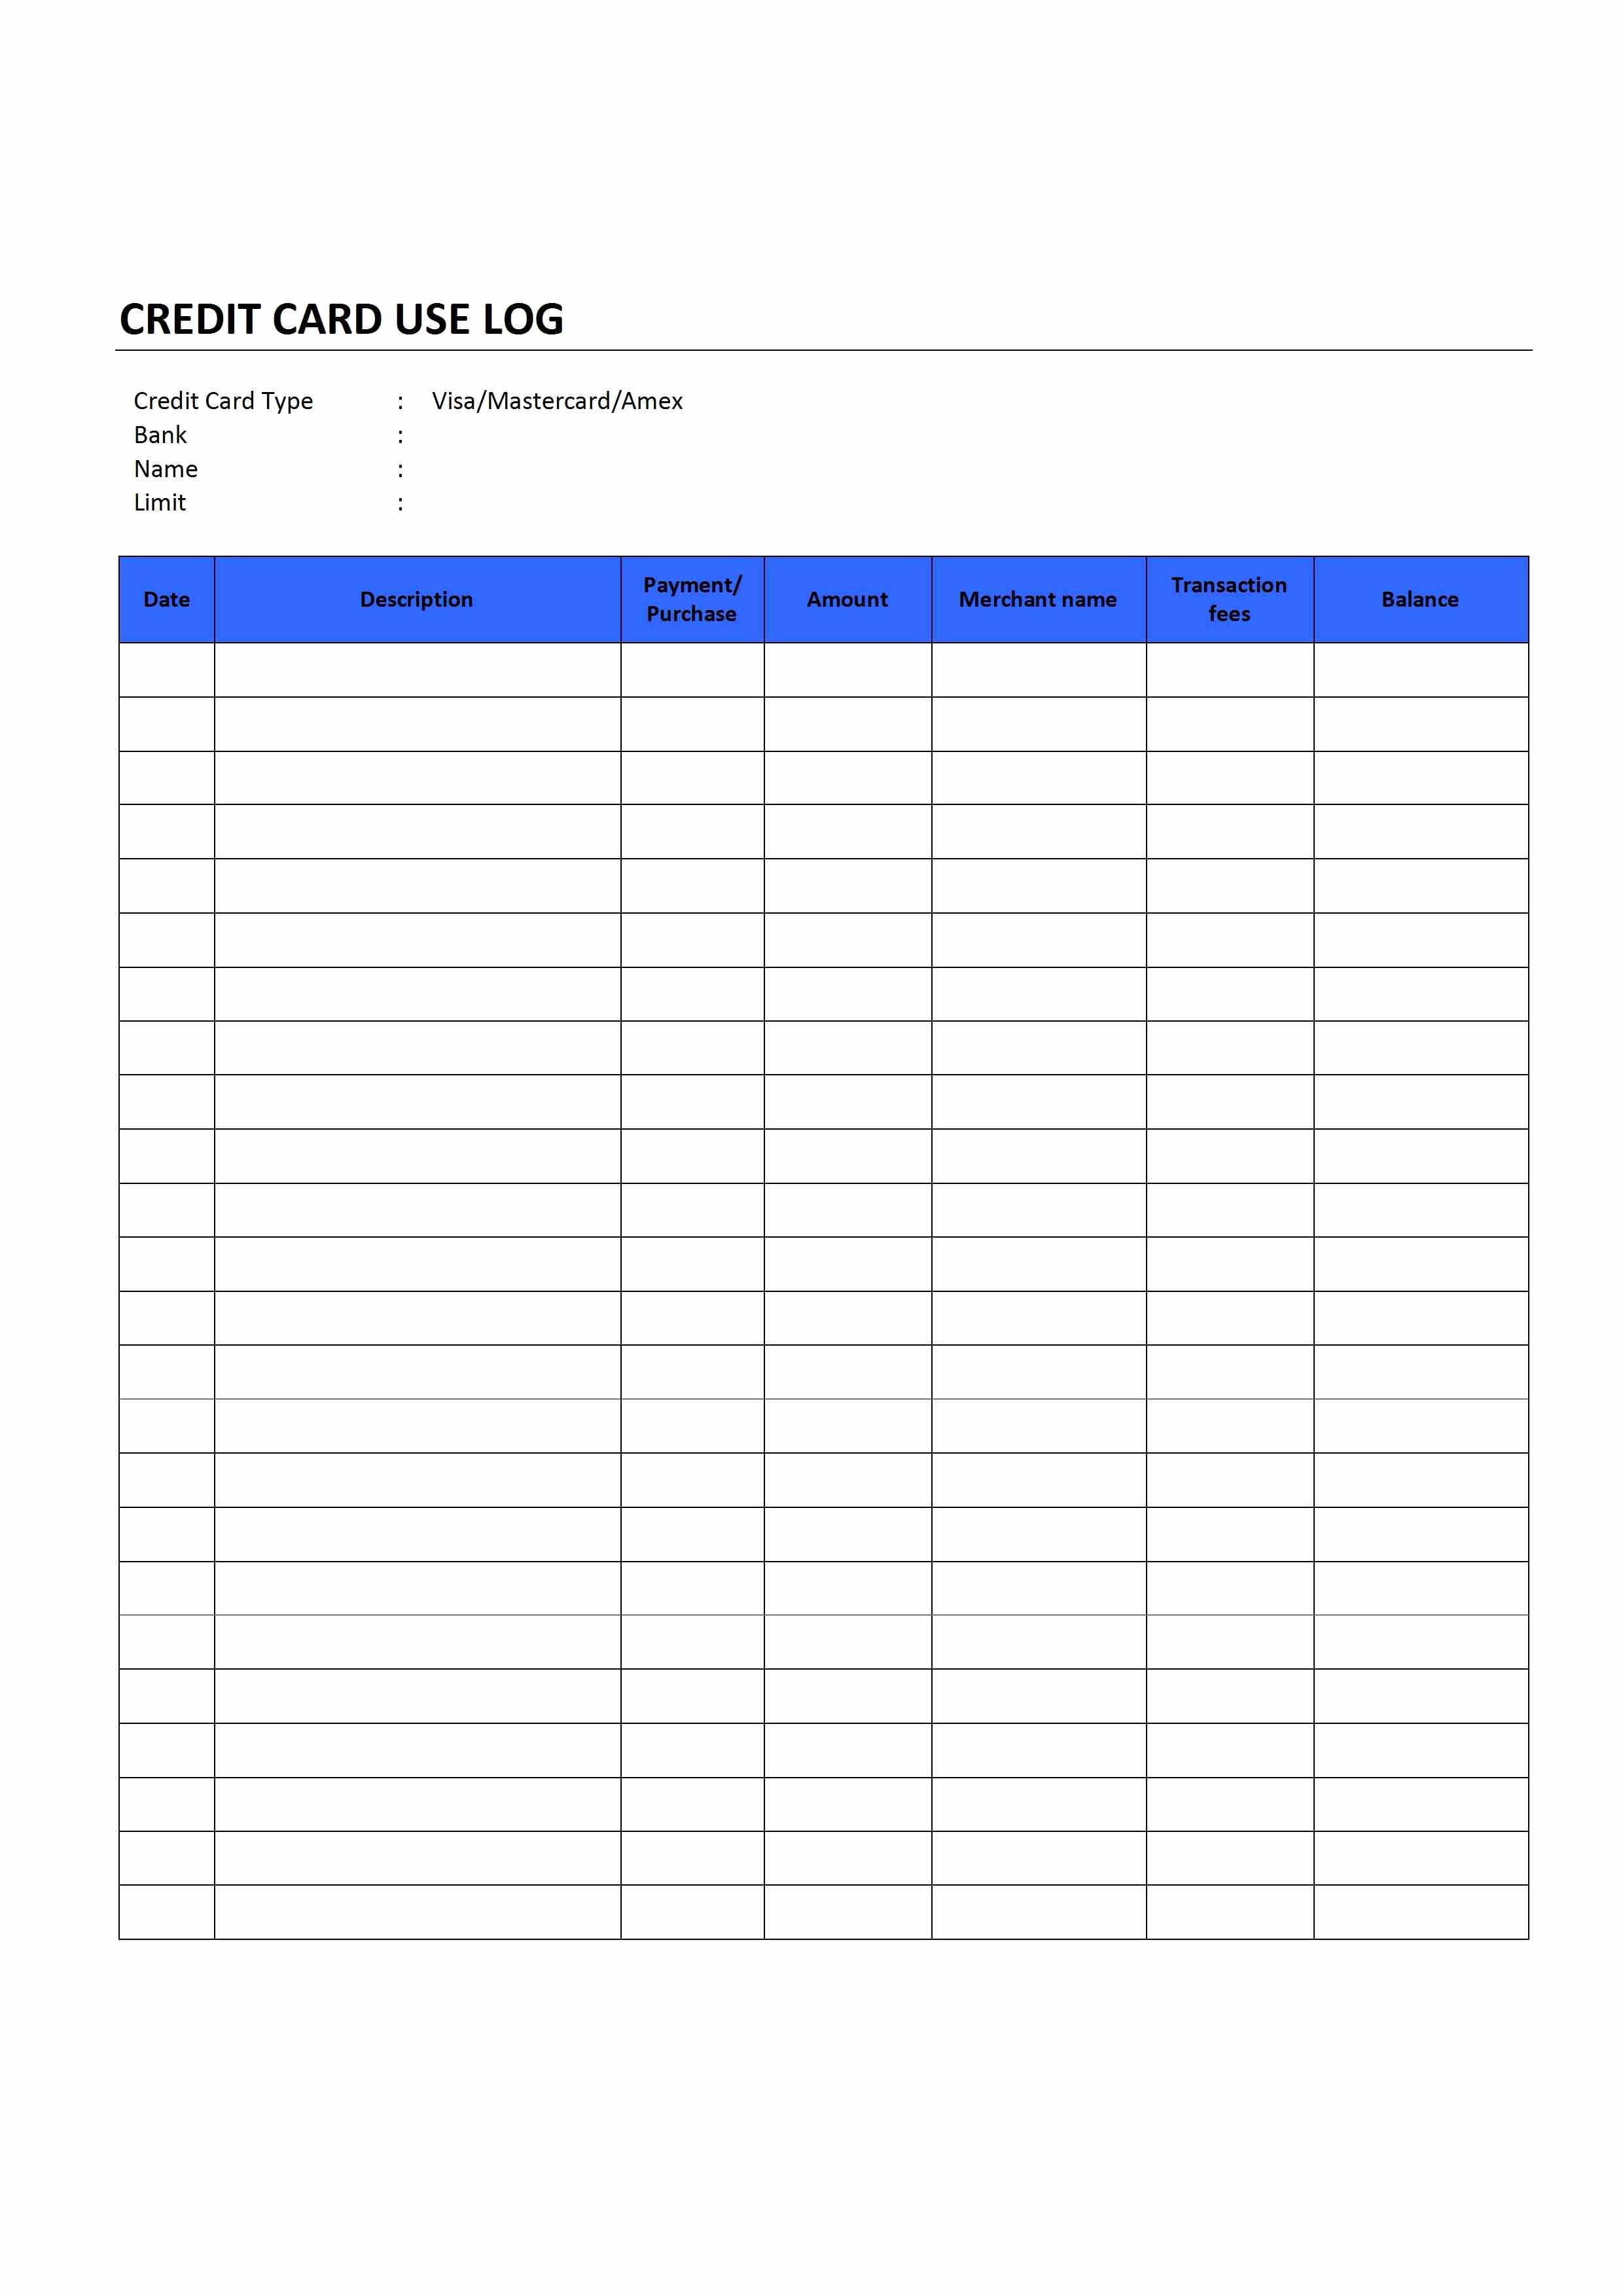 Credit Card Expense Report Template Lovely Credit Card Use Log